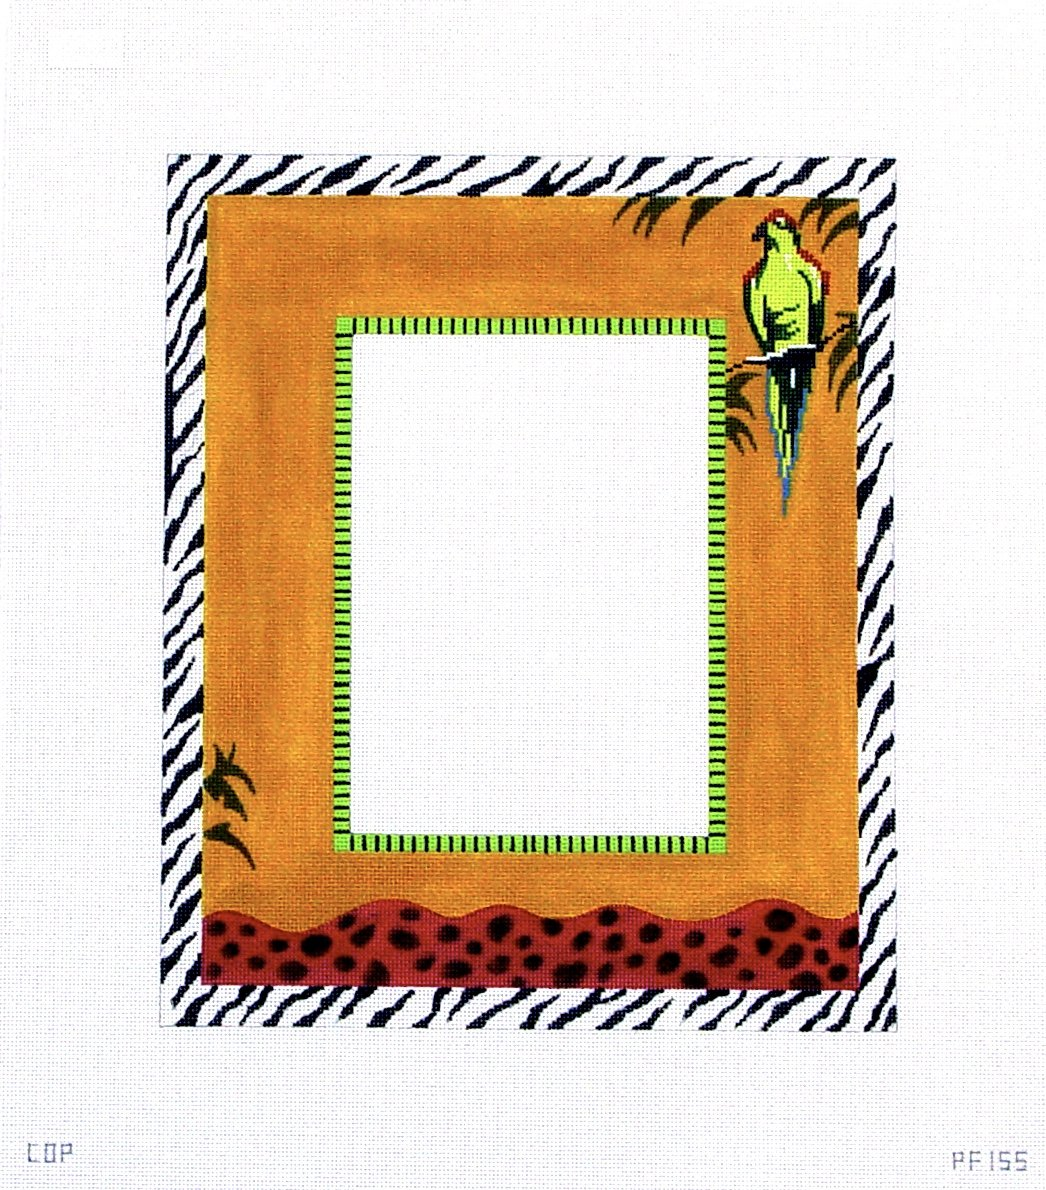 PF155 Parrot Picture Frame